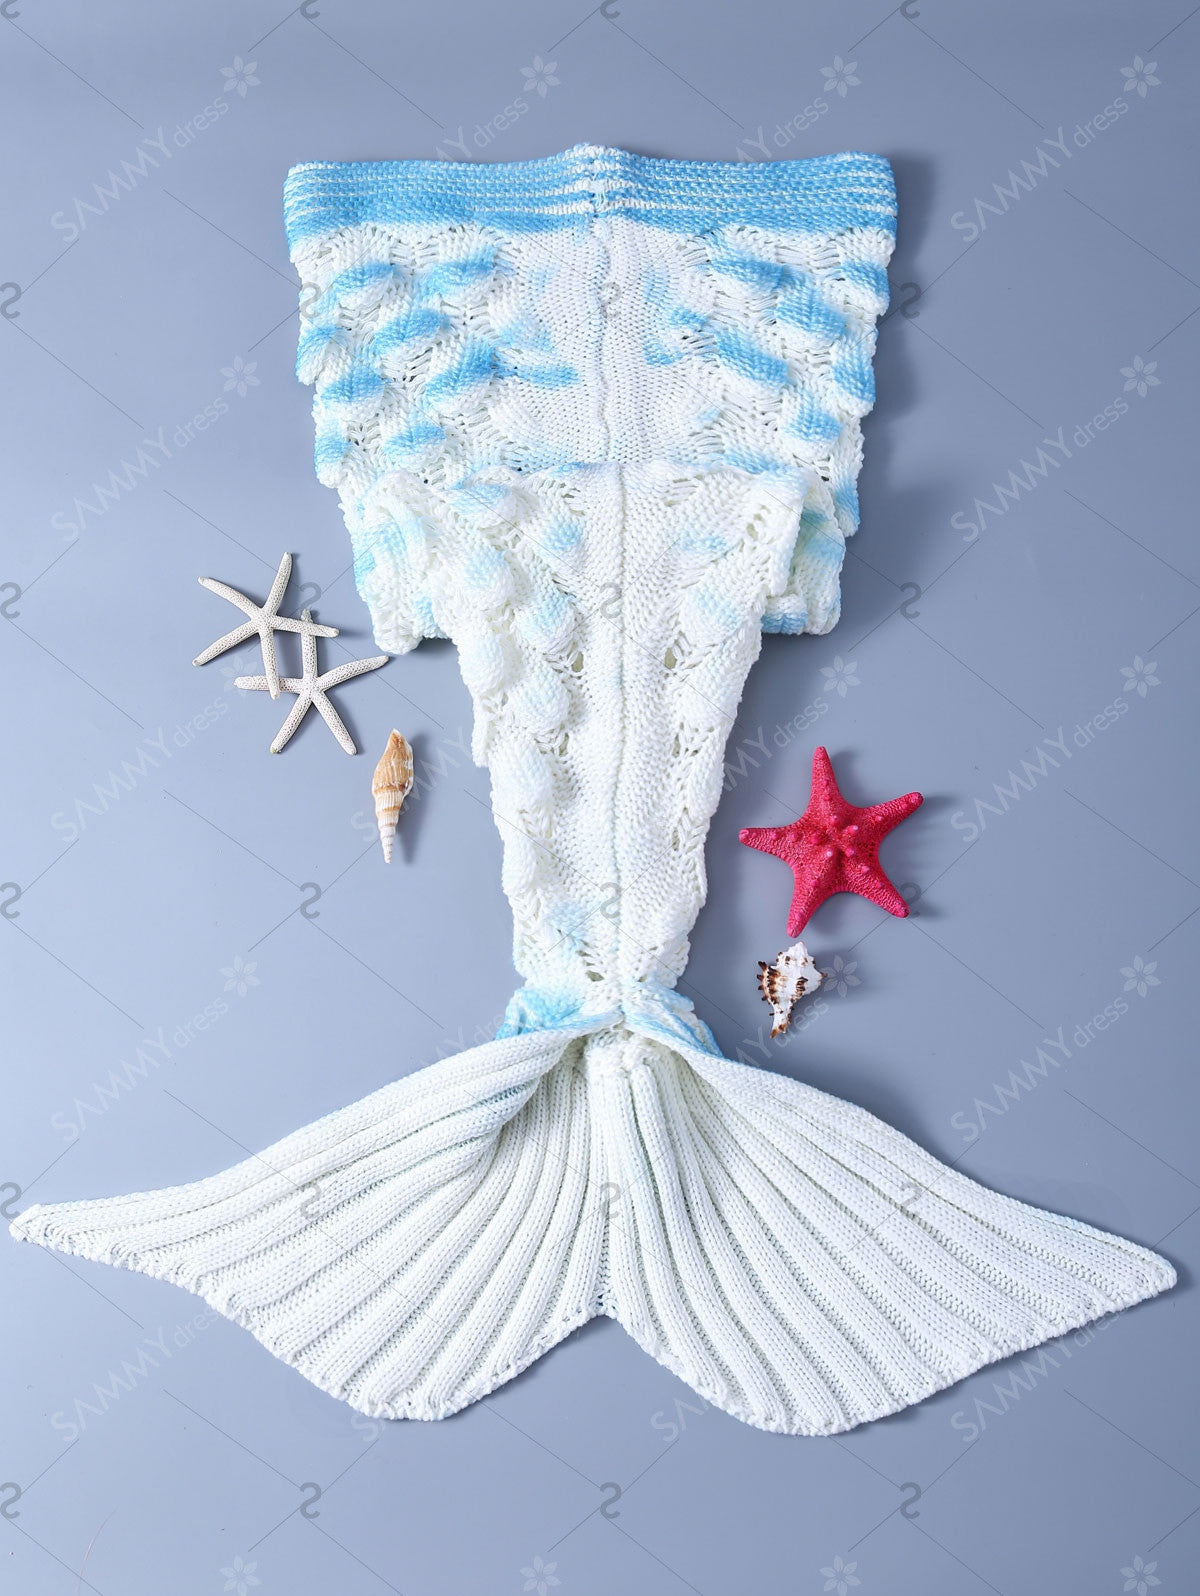 Stylish Crochet Shell Deisgn Knitting Mermaid Tail Shape Blanket For Kids